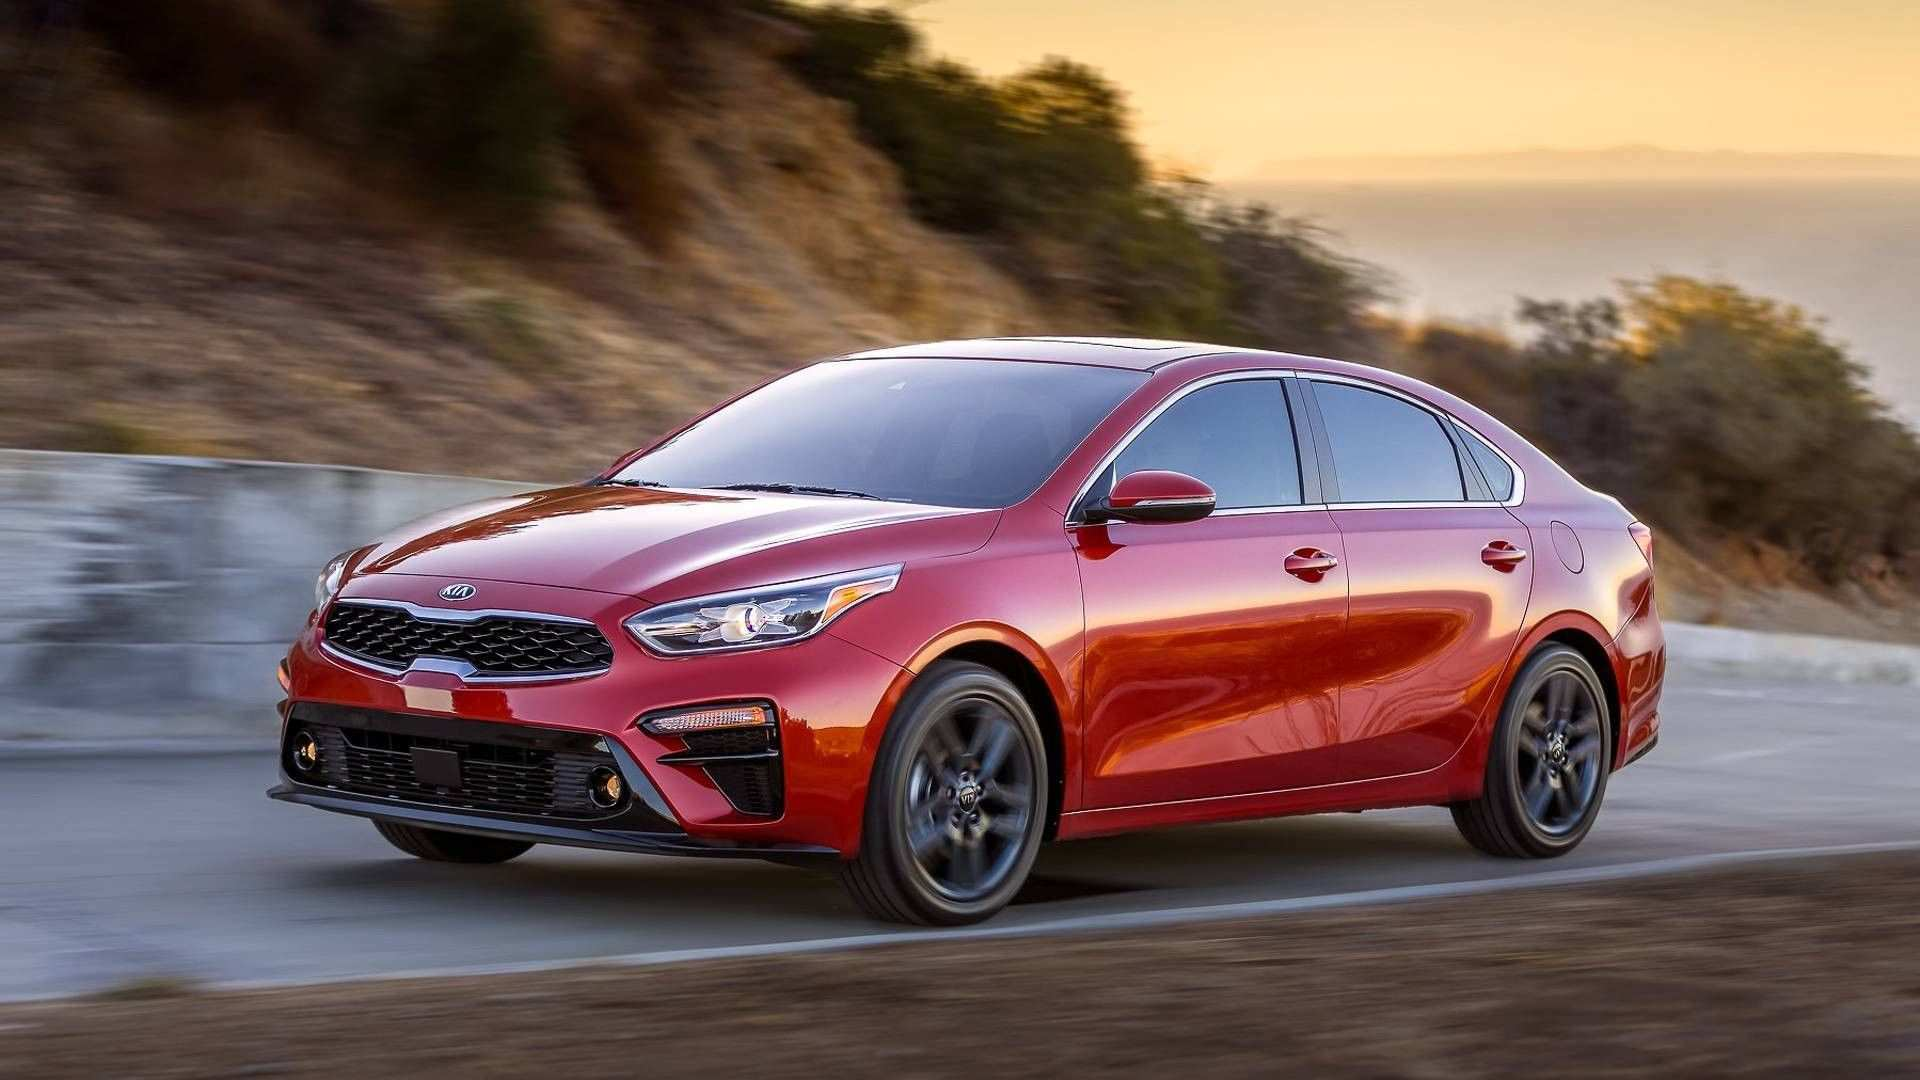 75 All New Best Ford 2019 Price In Egypt Specs And Review Exterior for Best Ford 2019 Price In Egypt Specs And Review